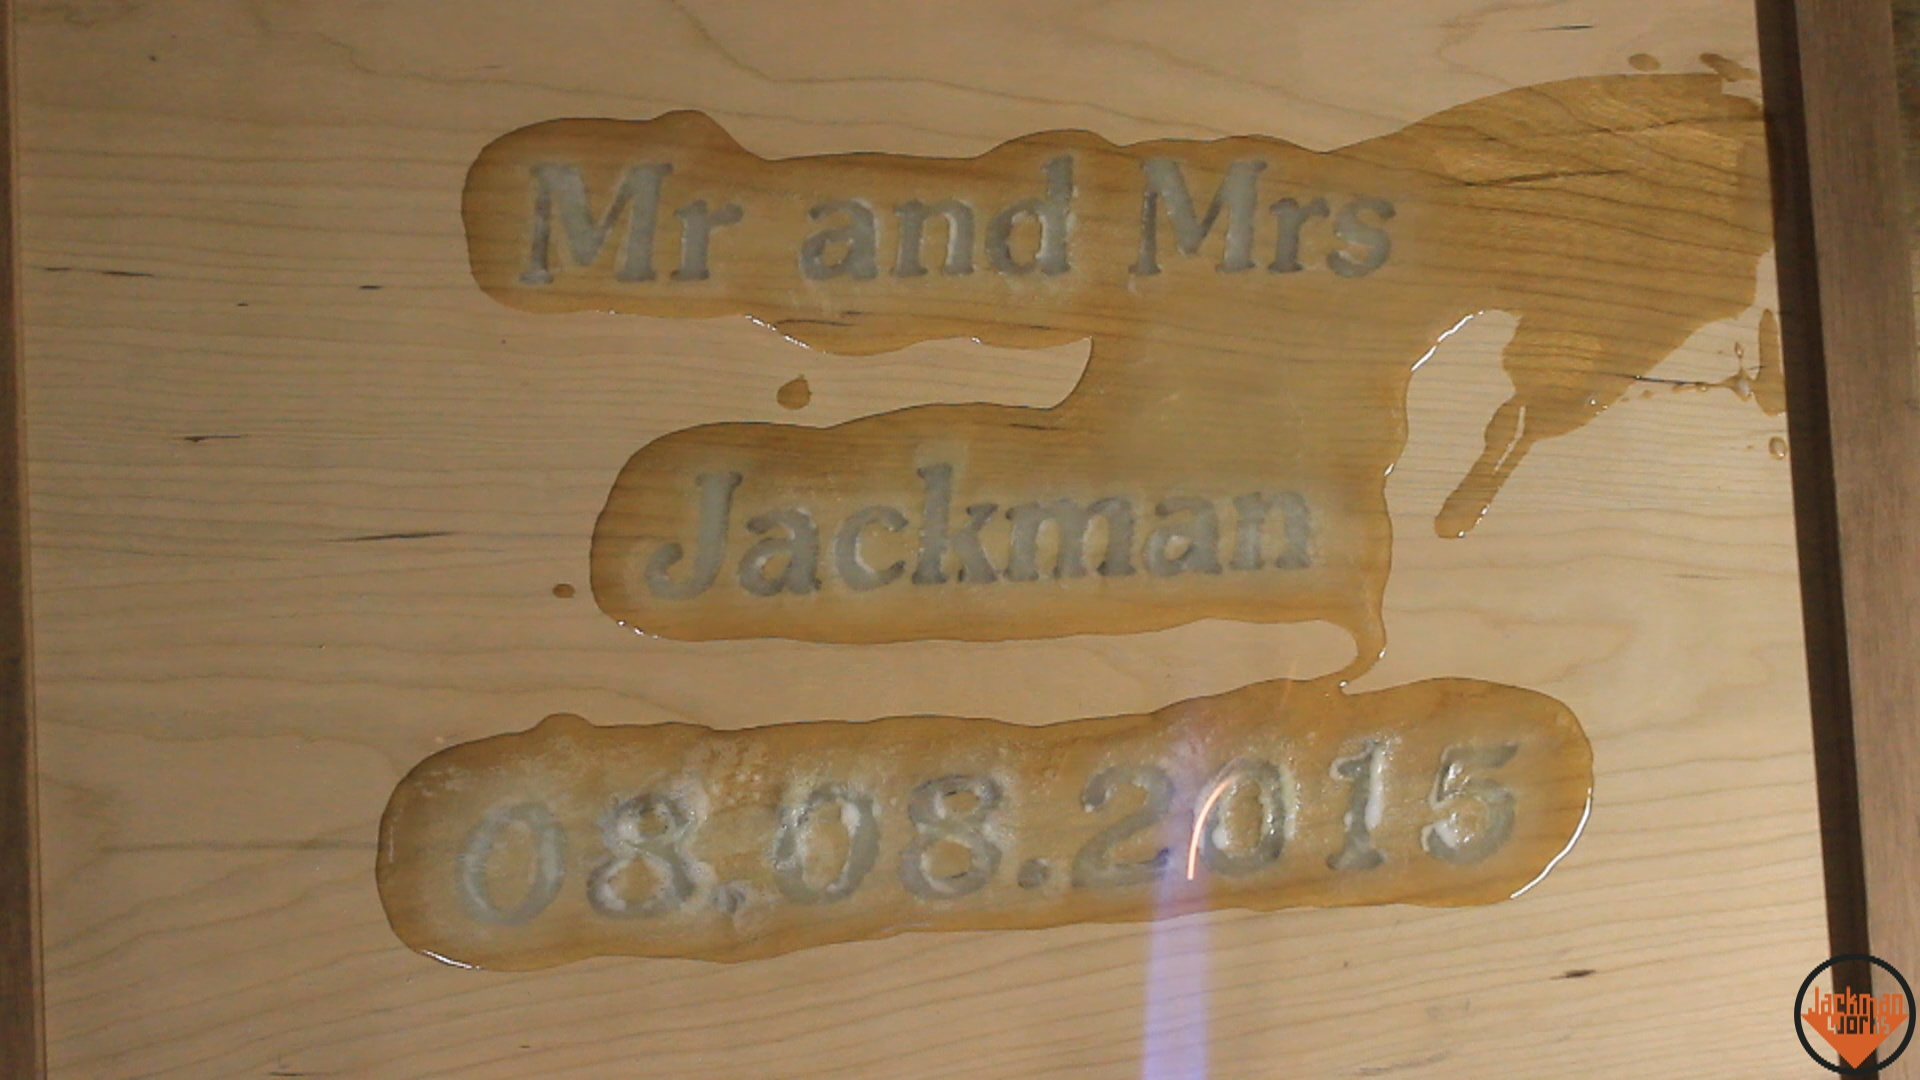 Led cherry wedding sign 16 jackman works jackmanjackman worksjackman carpentrycarpentrywoodworkingwooddiydo it yourselfbuildingmakingdesignupcycledrecycledreclaimedlighted signled solutioingenieria Image collections